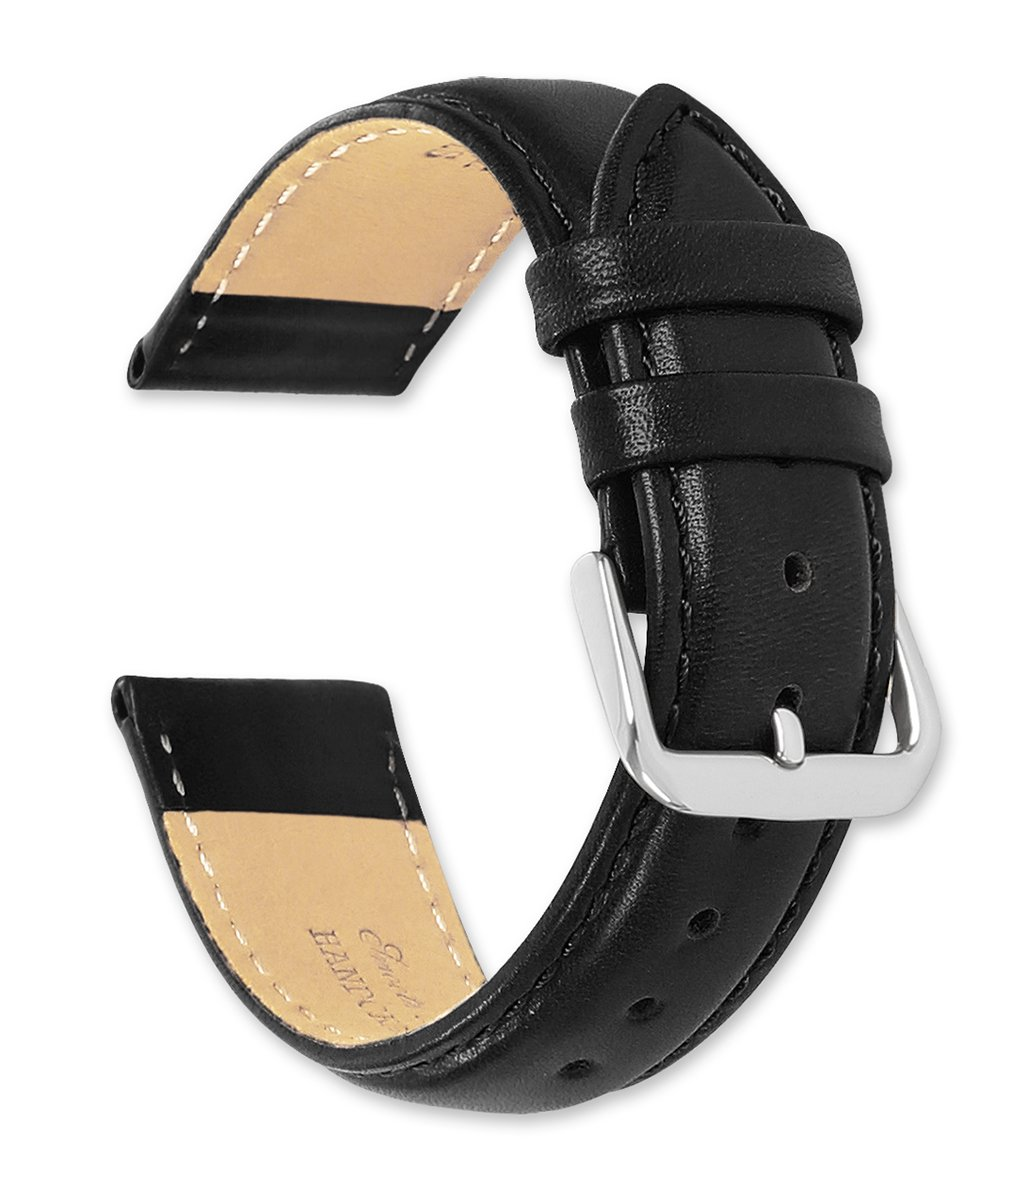 deBeer brand Smooth Leather Watch Band (Silver & Gold Buckle) - Black 15mm